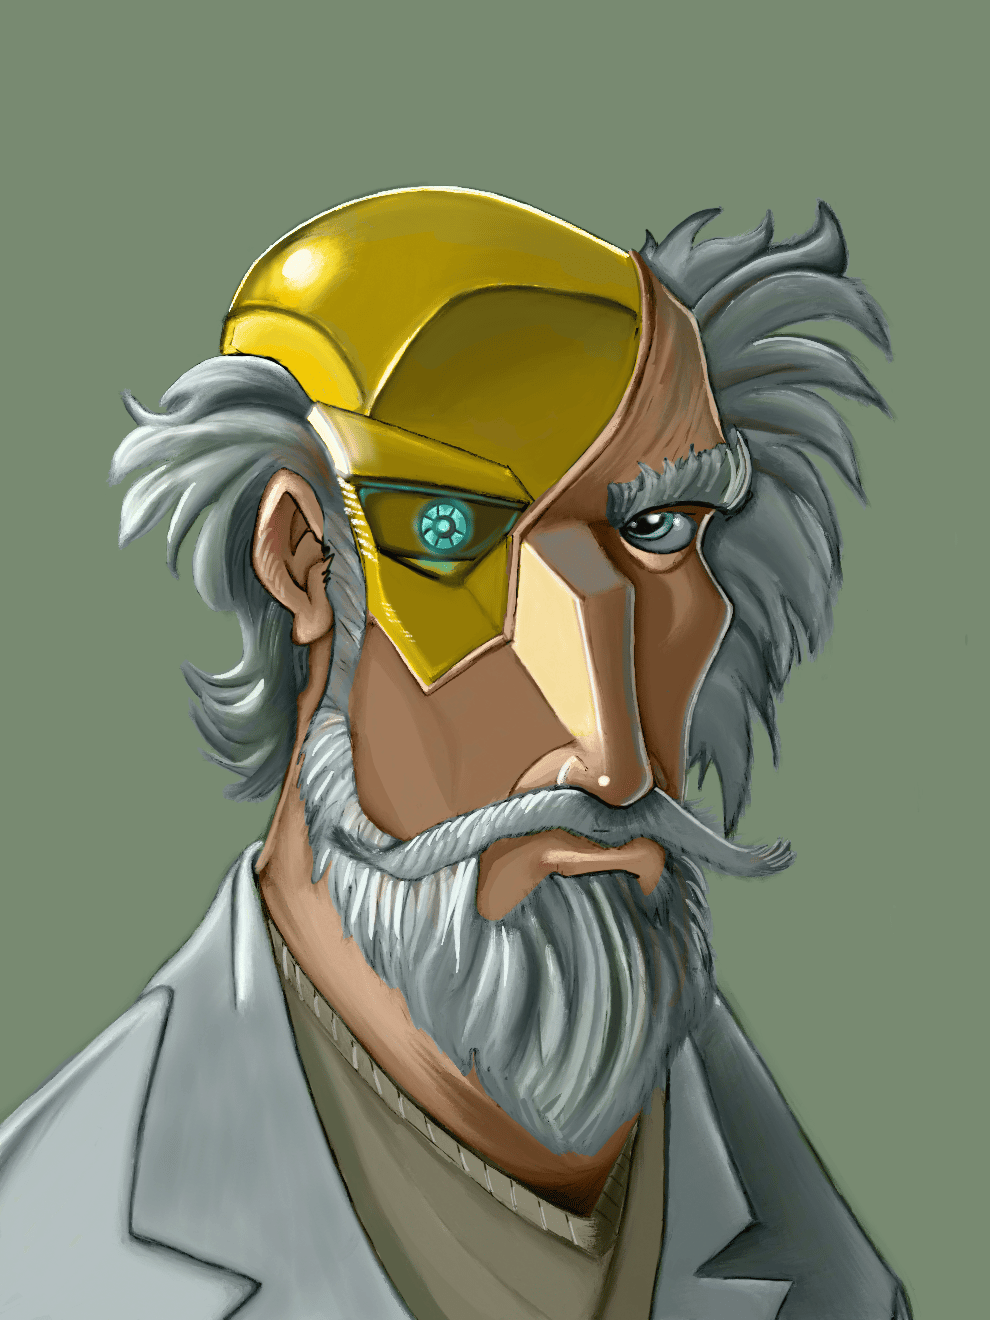 Mad Scientist - Digital Painting - image 2 - student project